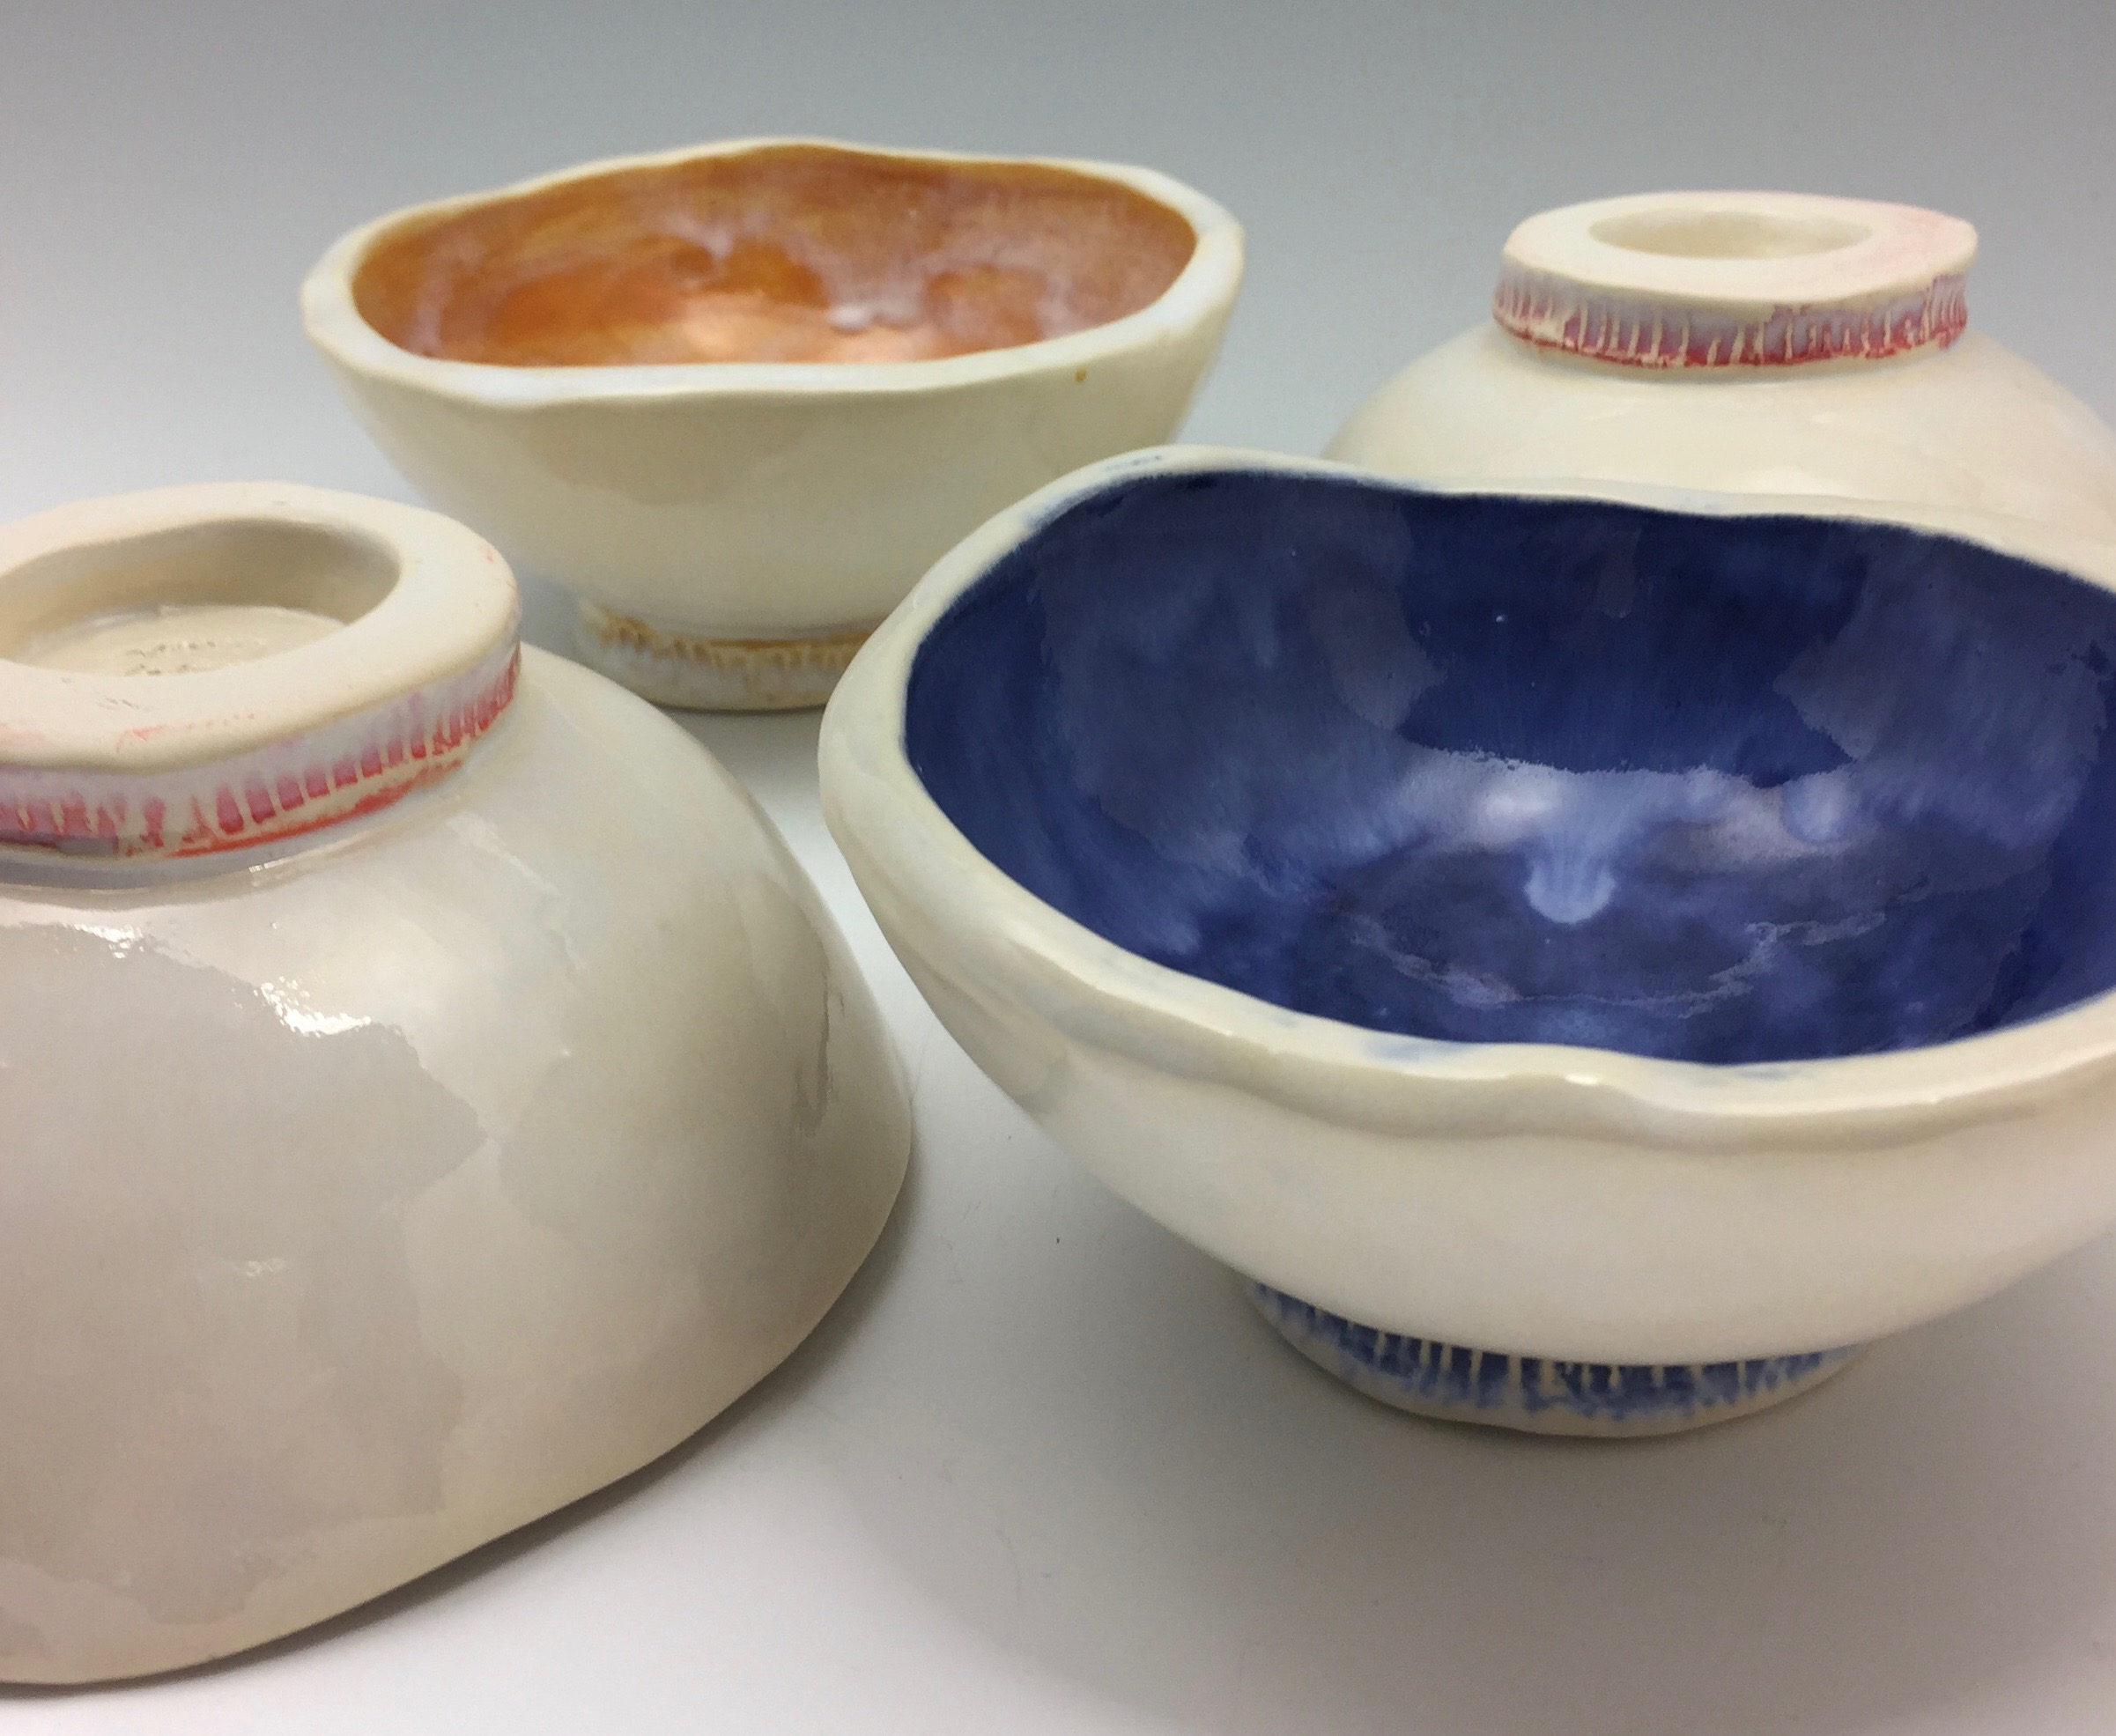 This group of bowls is accompanying a dinner set on its way to California. I experimented and accented each foot of the bowl with a pop of color. I like the results!